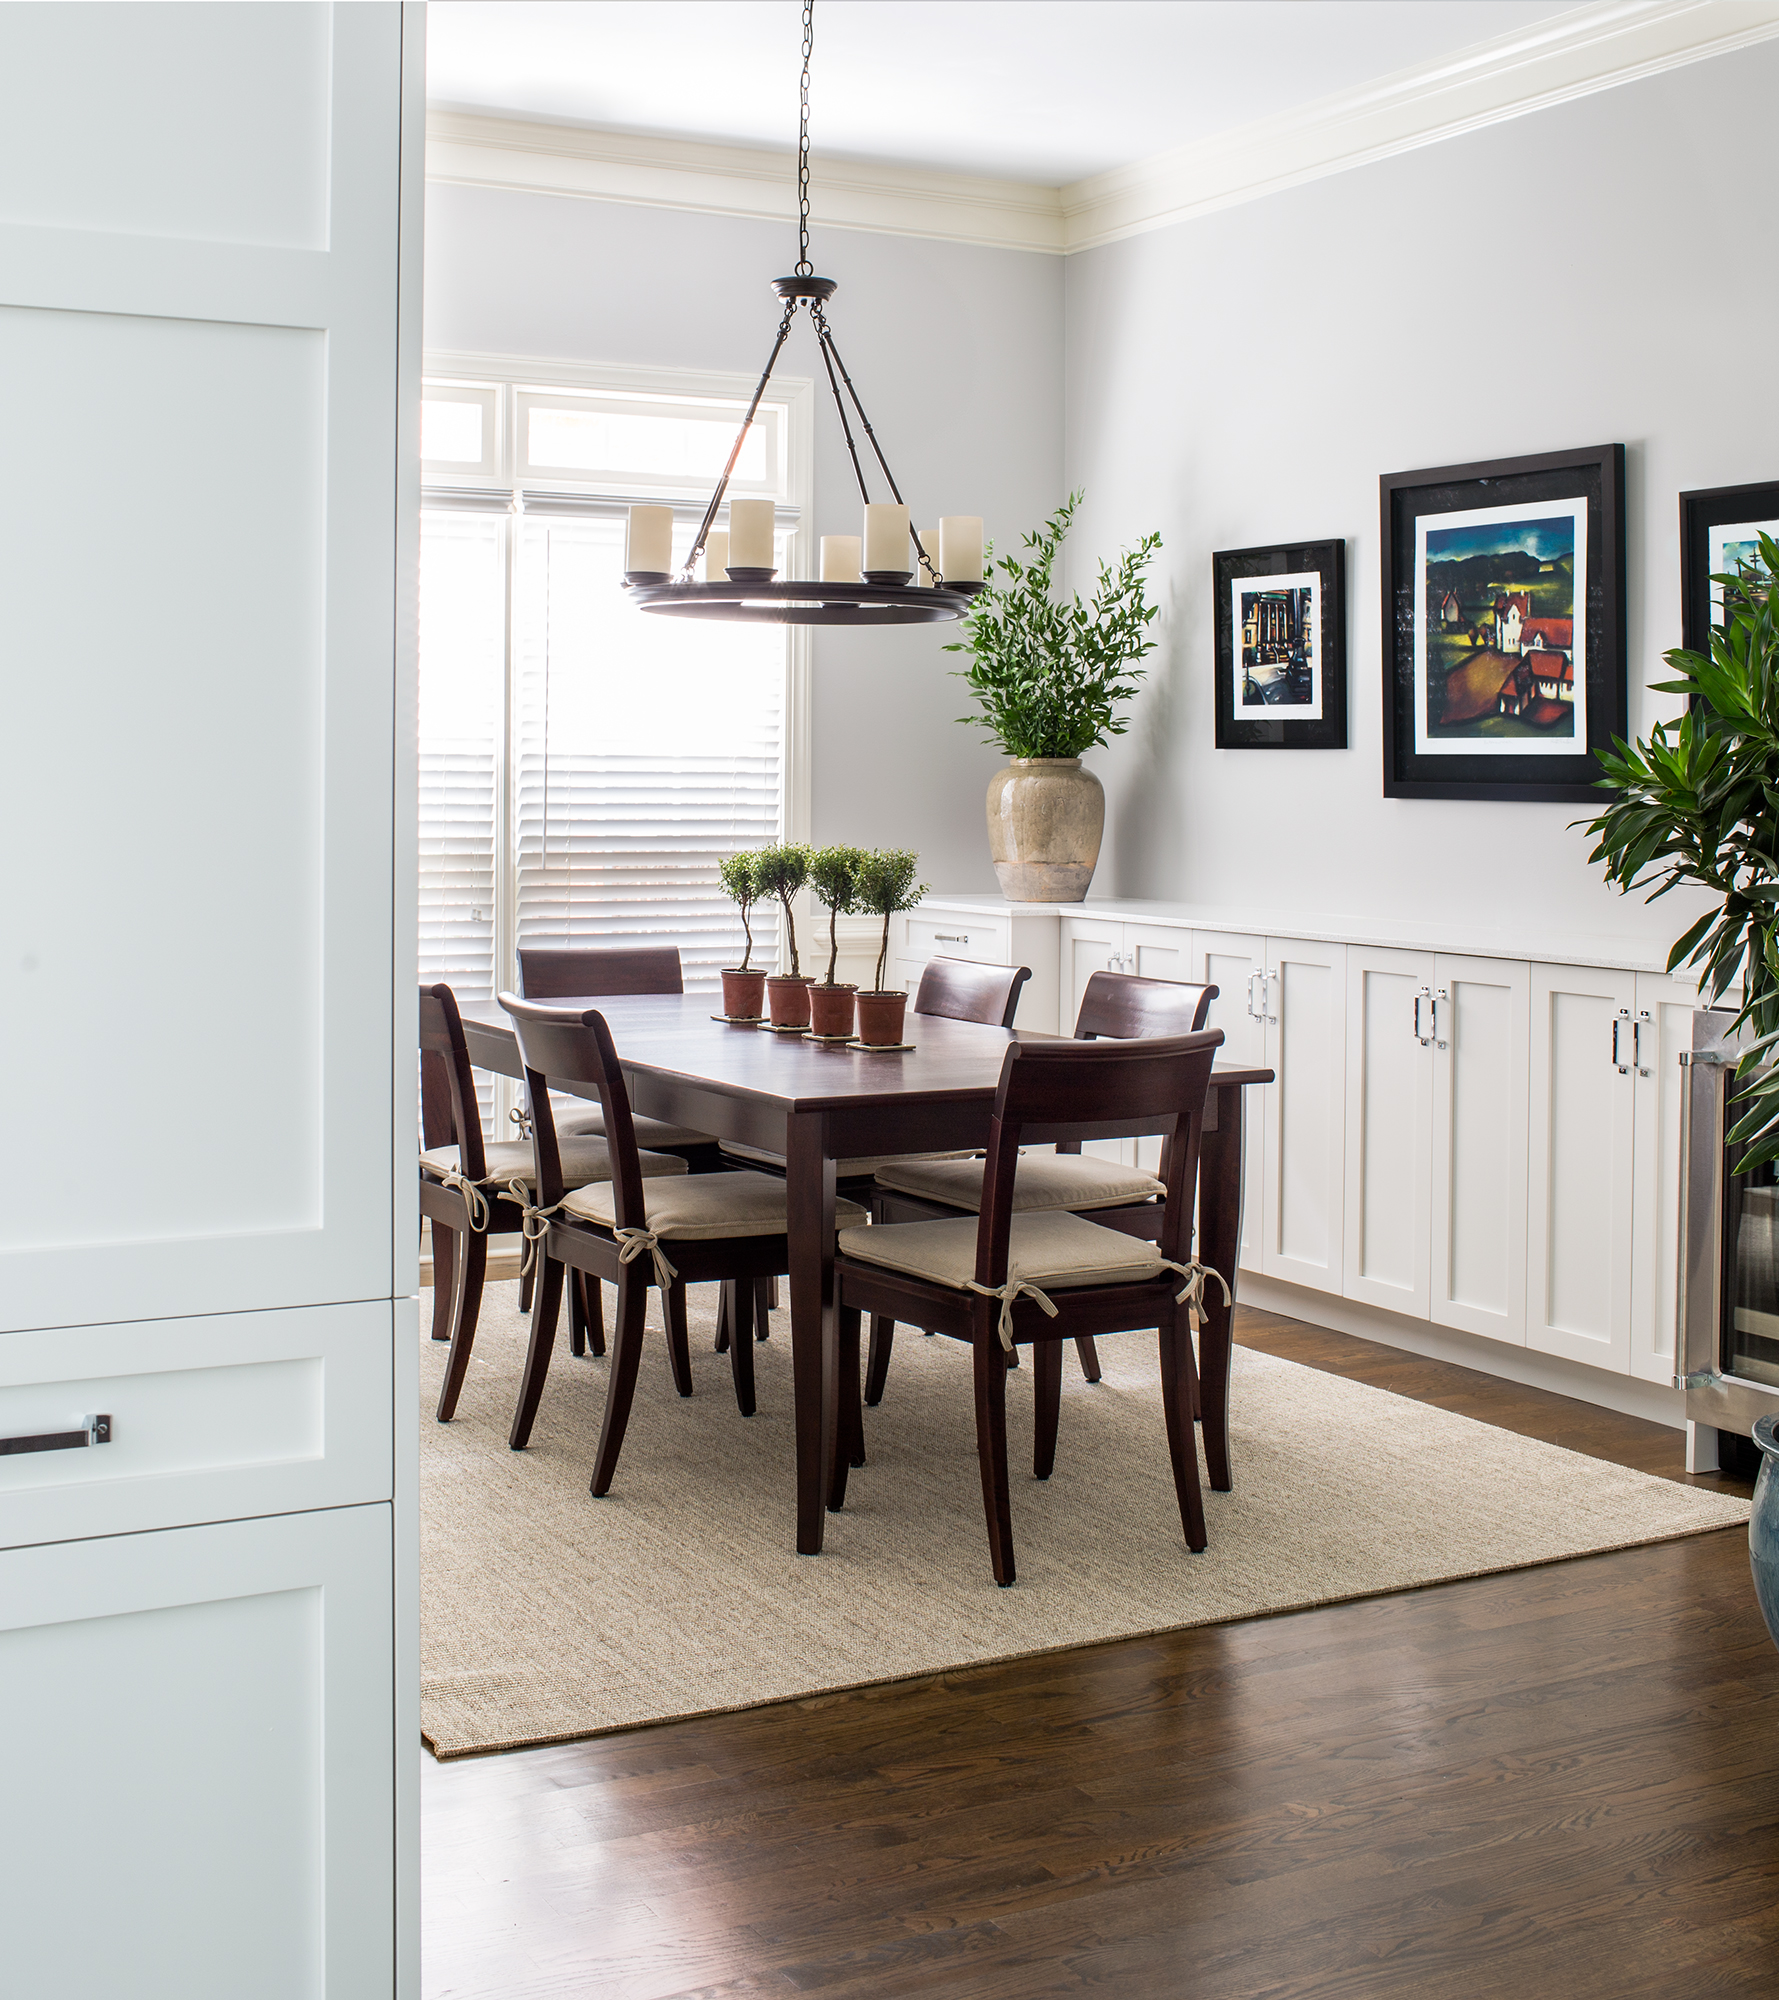 decatur dining room renovation | jeff herr photography